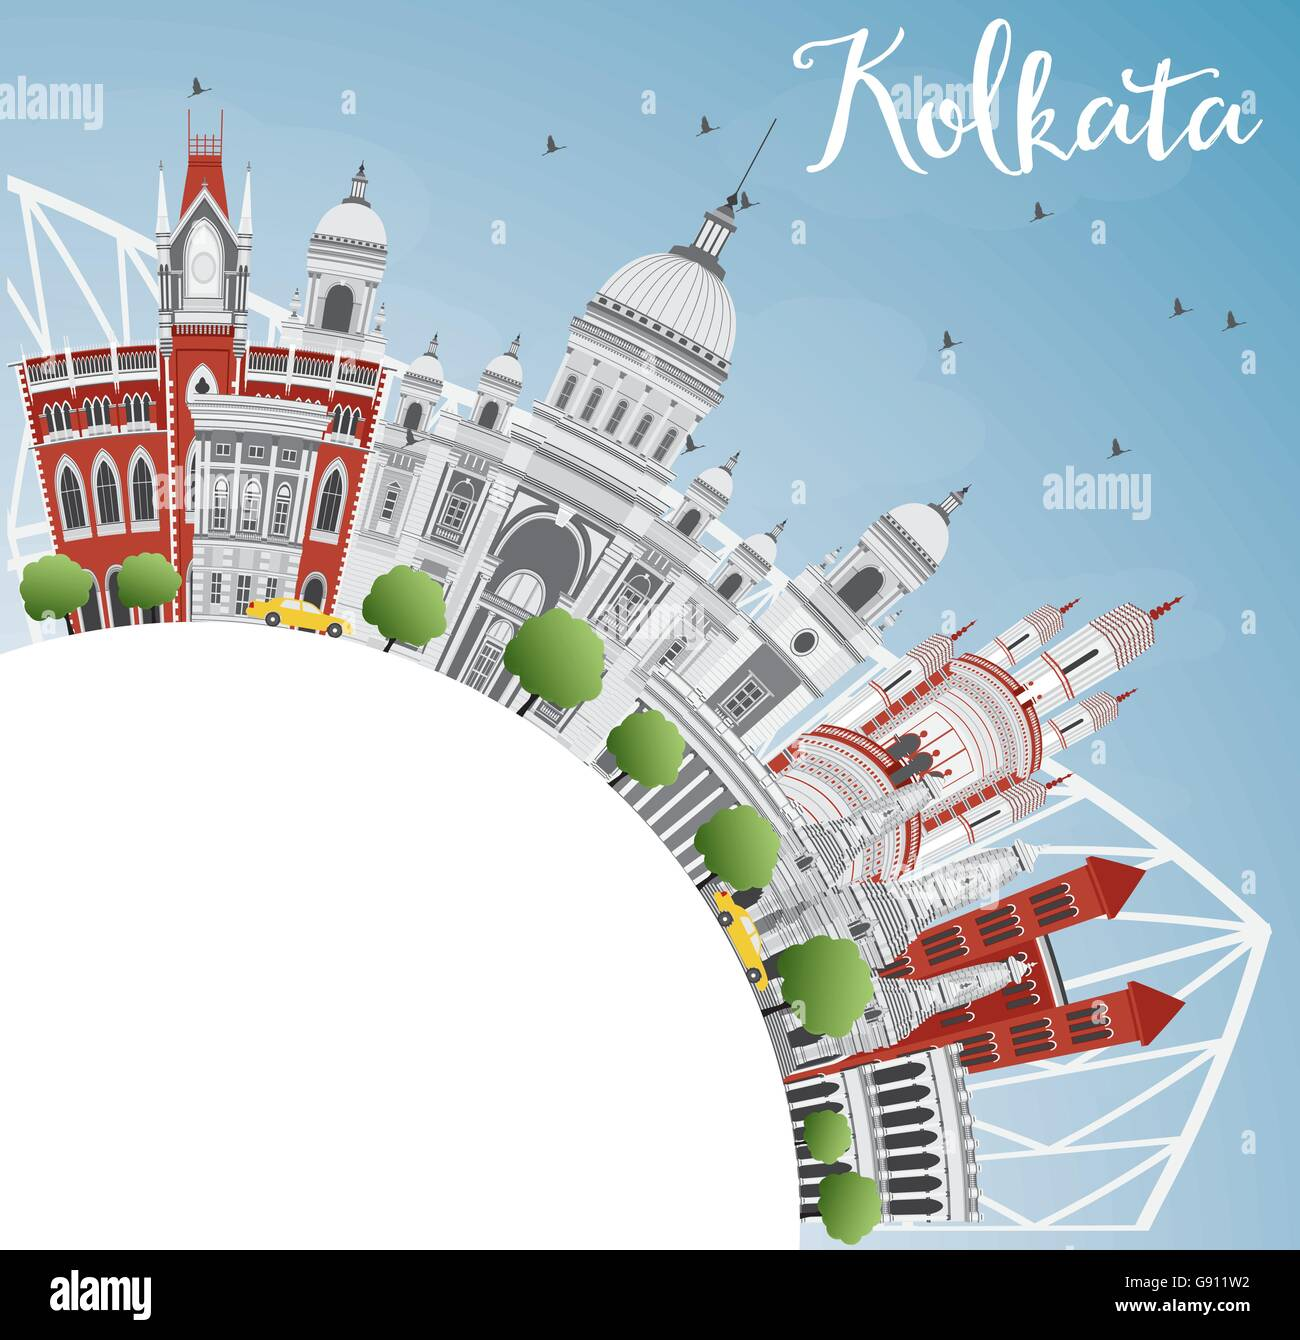 Kolkata Skyline with Gray Landmarks and Copy Space. Vector Illustration. Business Travel and Tourism Concept - Stock Vector